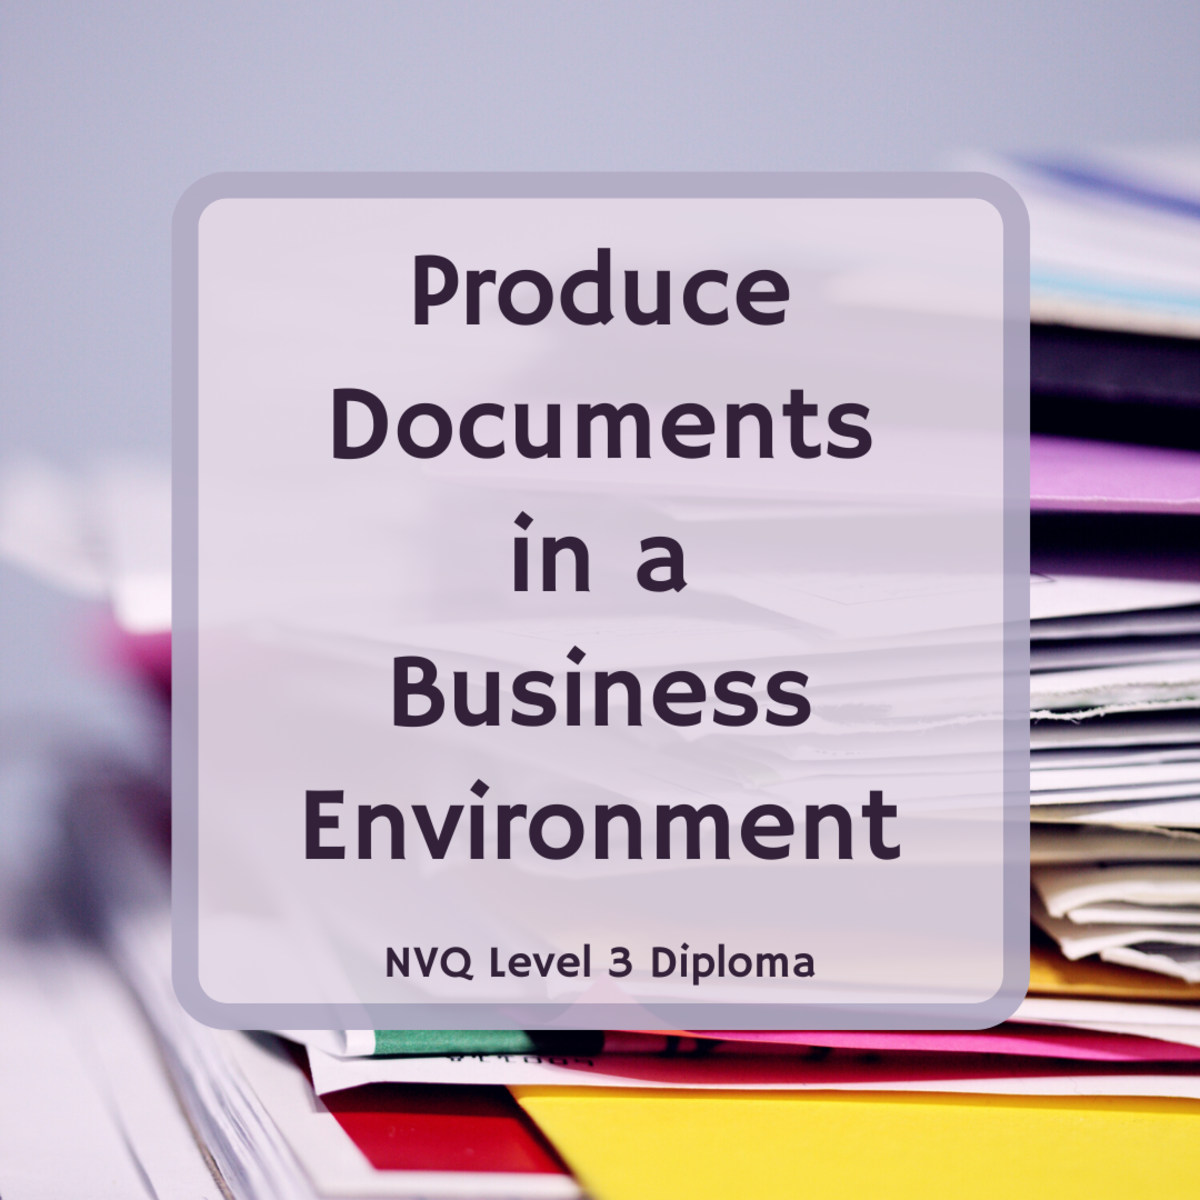 NVQ Level 3: Produce Documents in a Business Environment